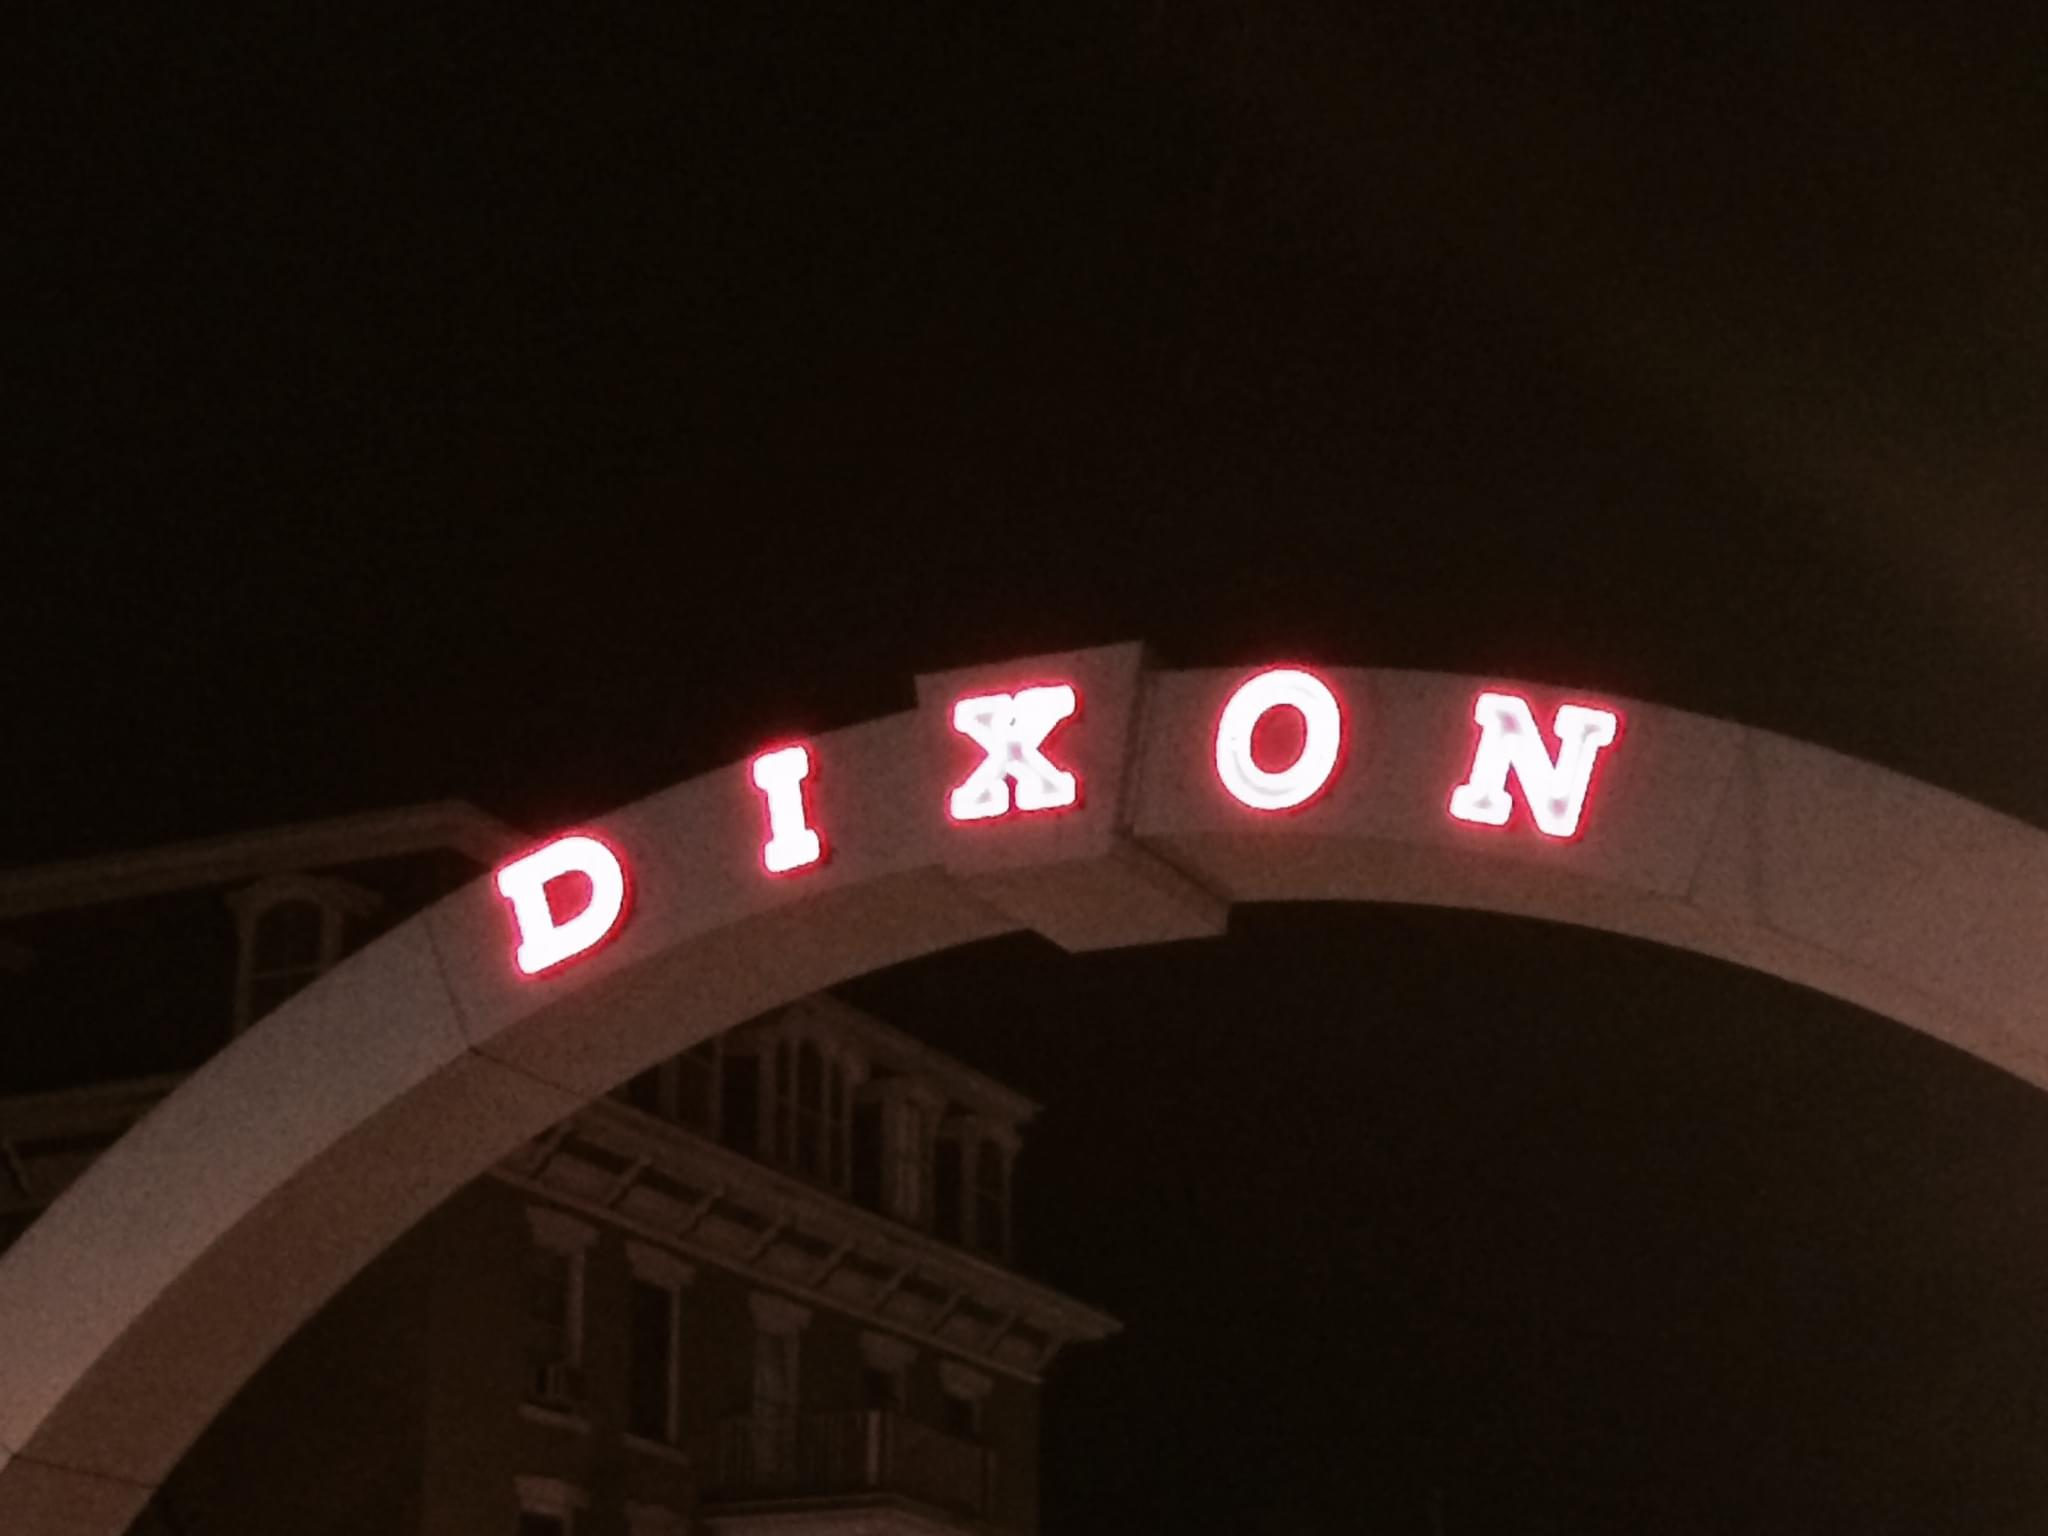 USEPA Begins $3million Cleanup of Dixon Iron and Metal Property